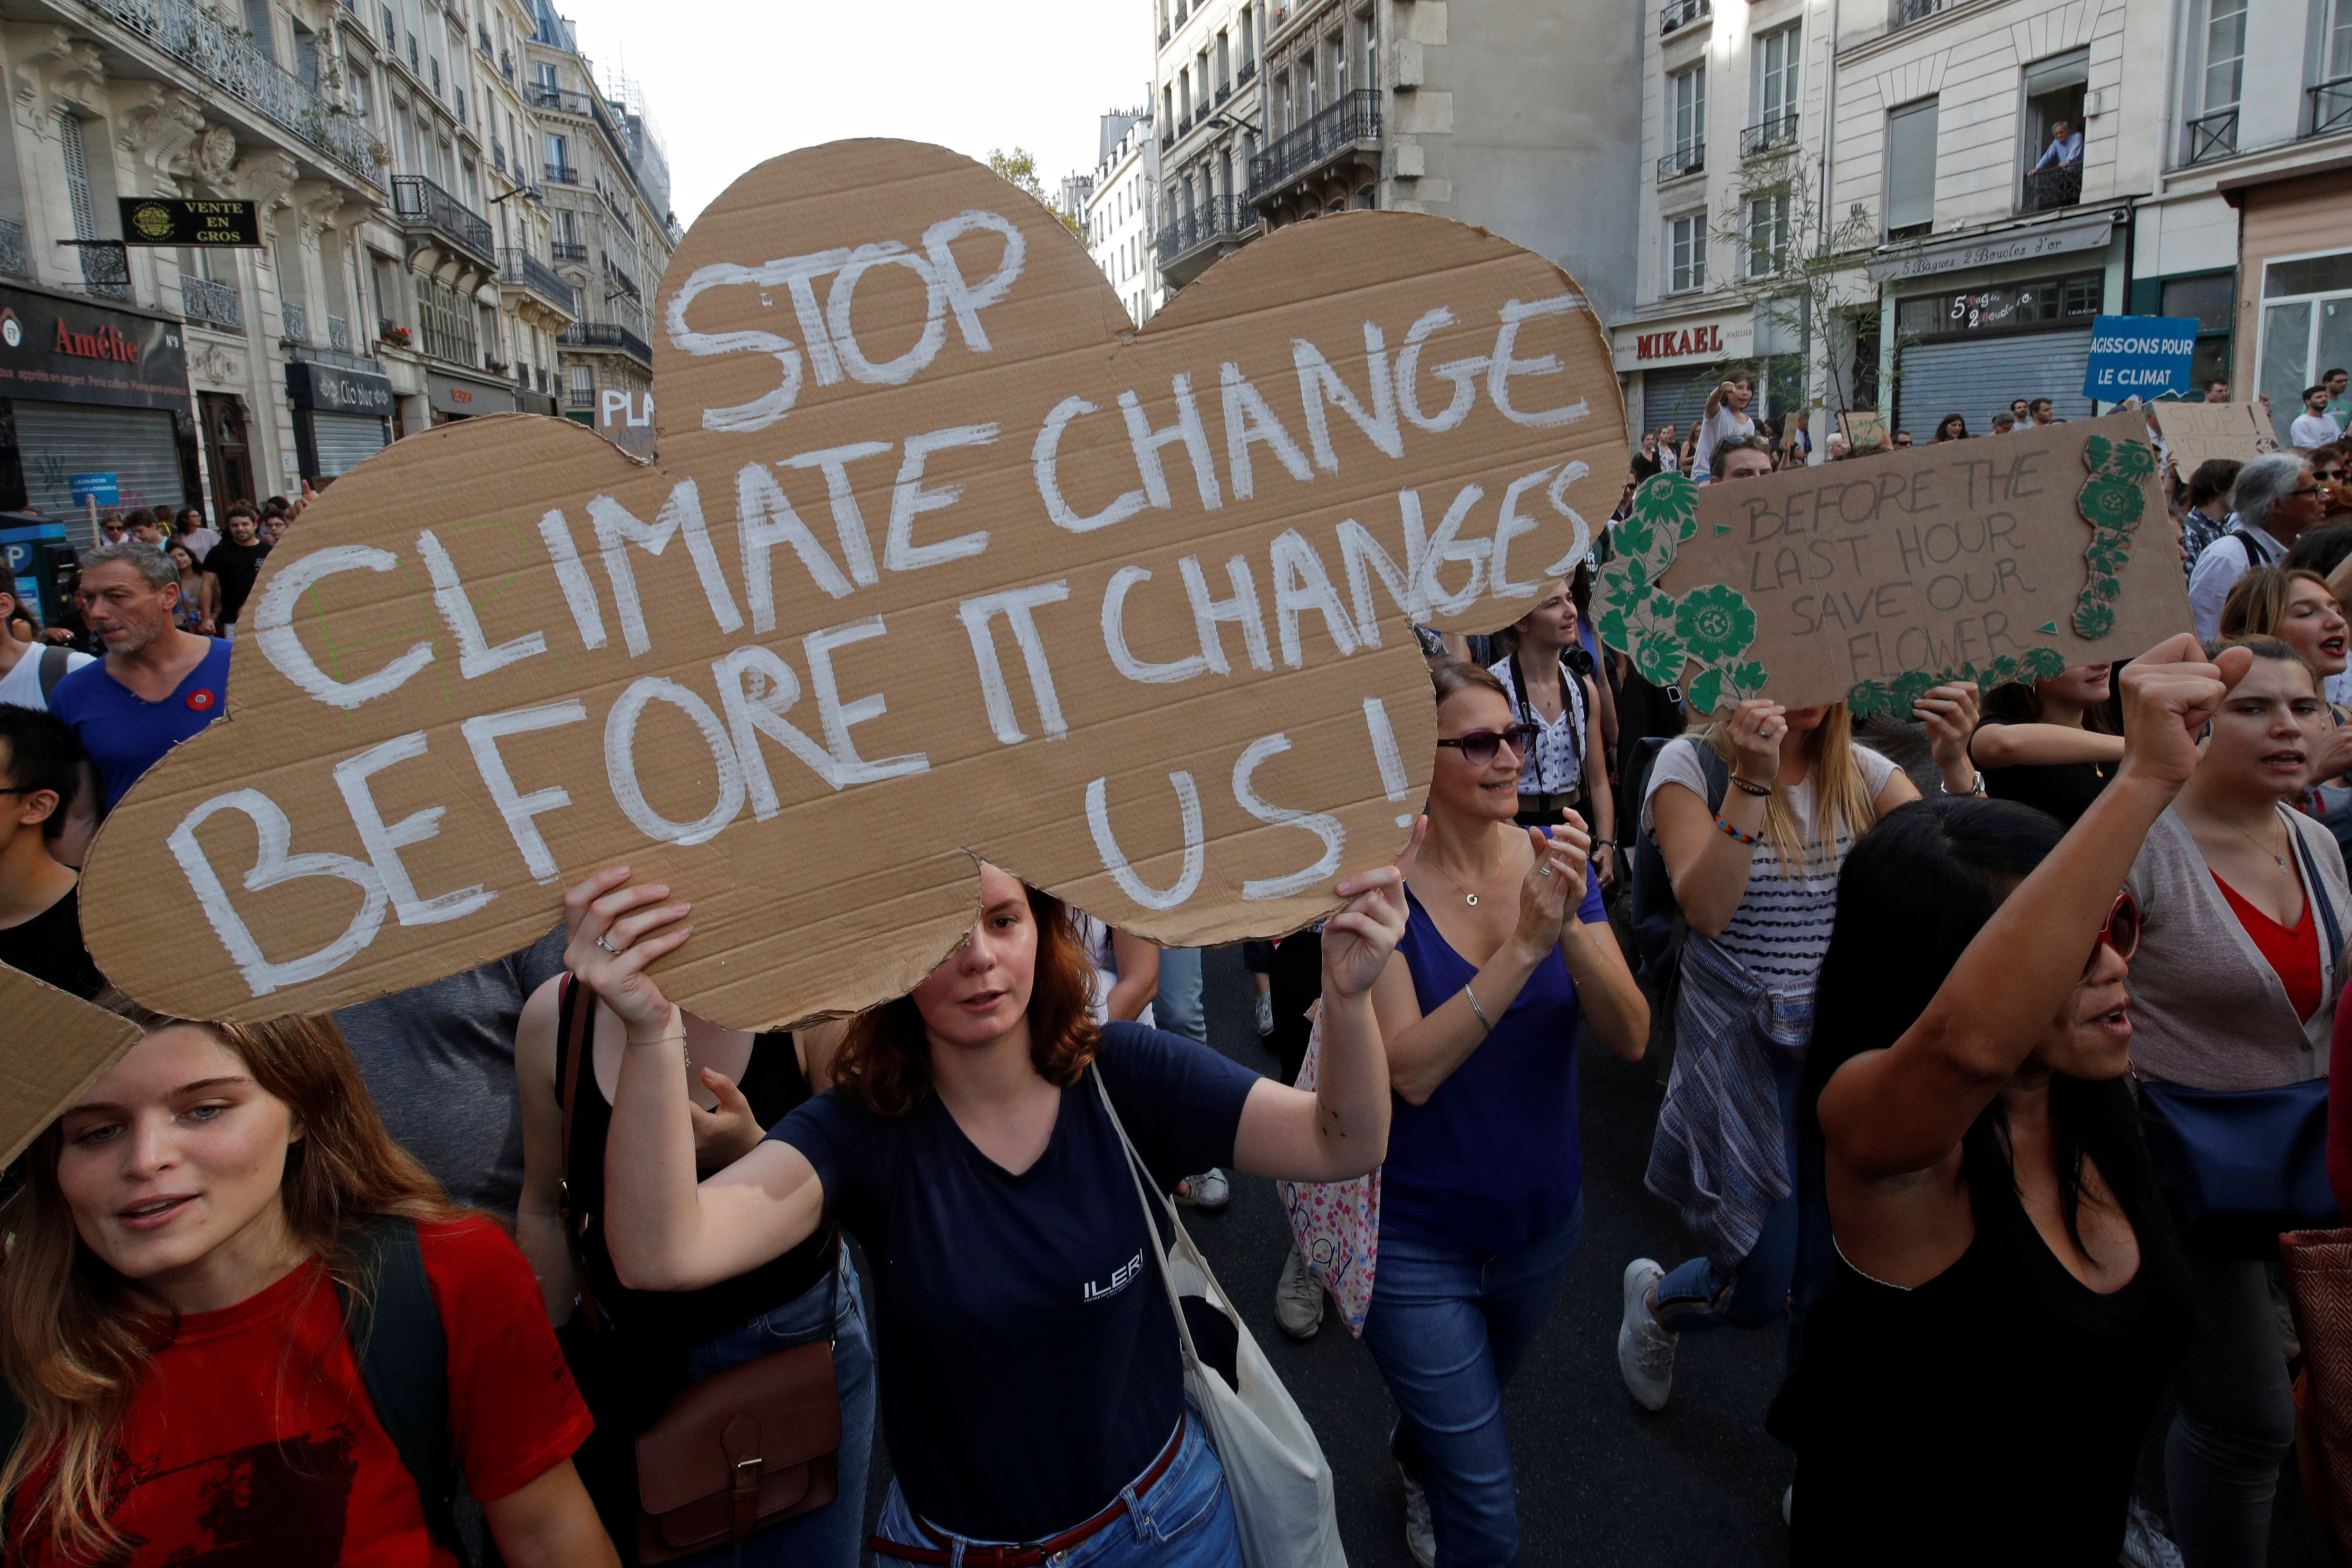 Protesters march to urge politicians to act against climate change in Paris